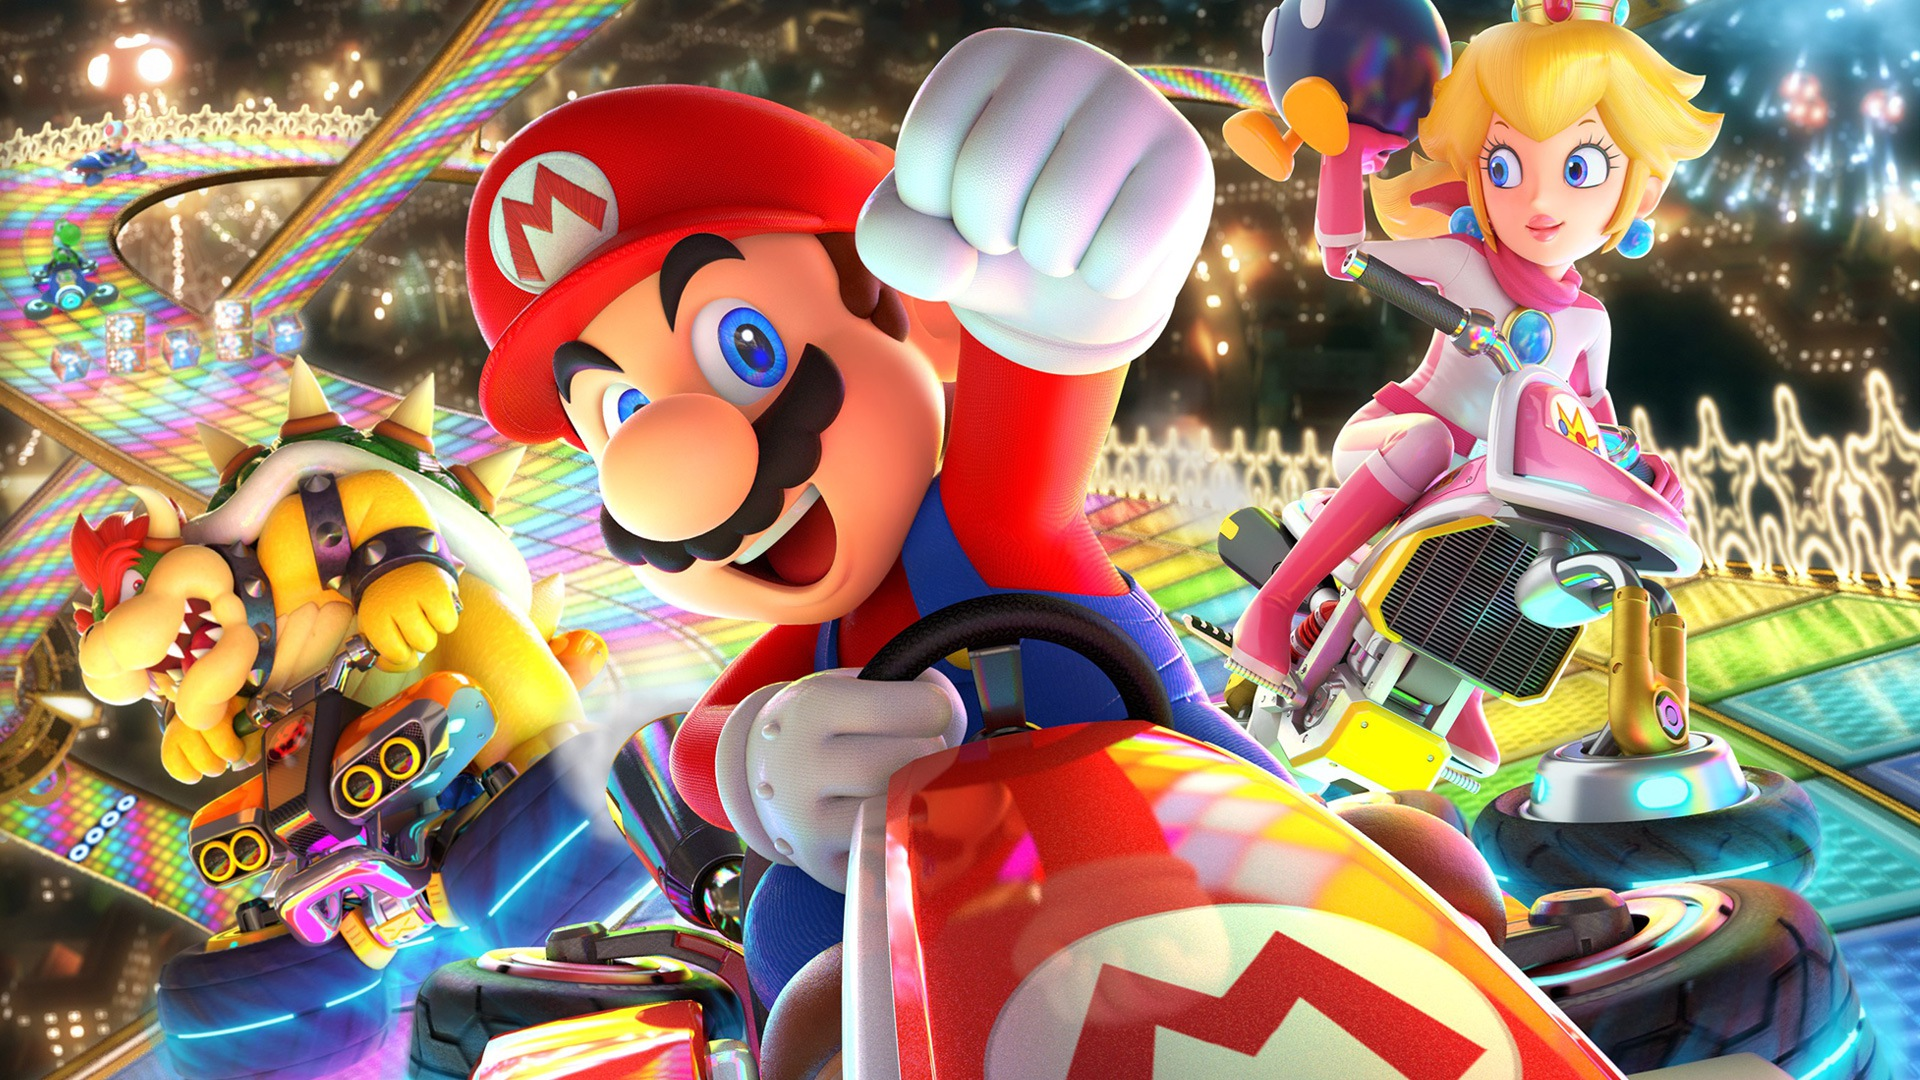 Nintendo delays its very first Mario Kart game for mobile